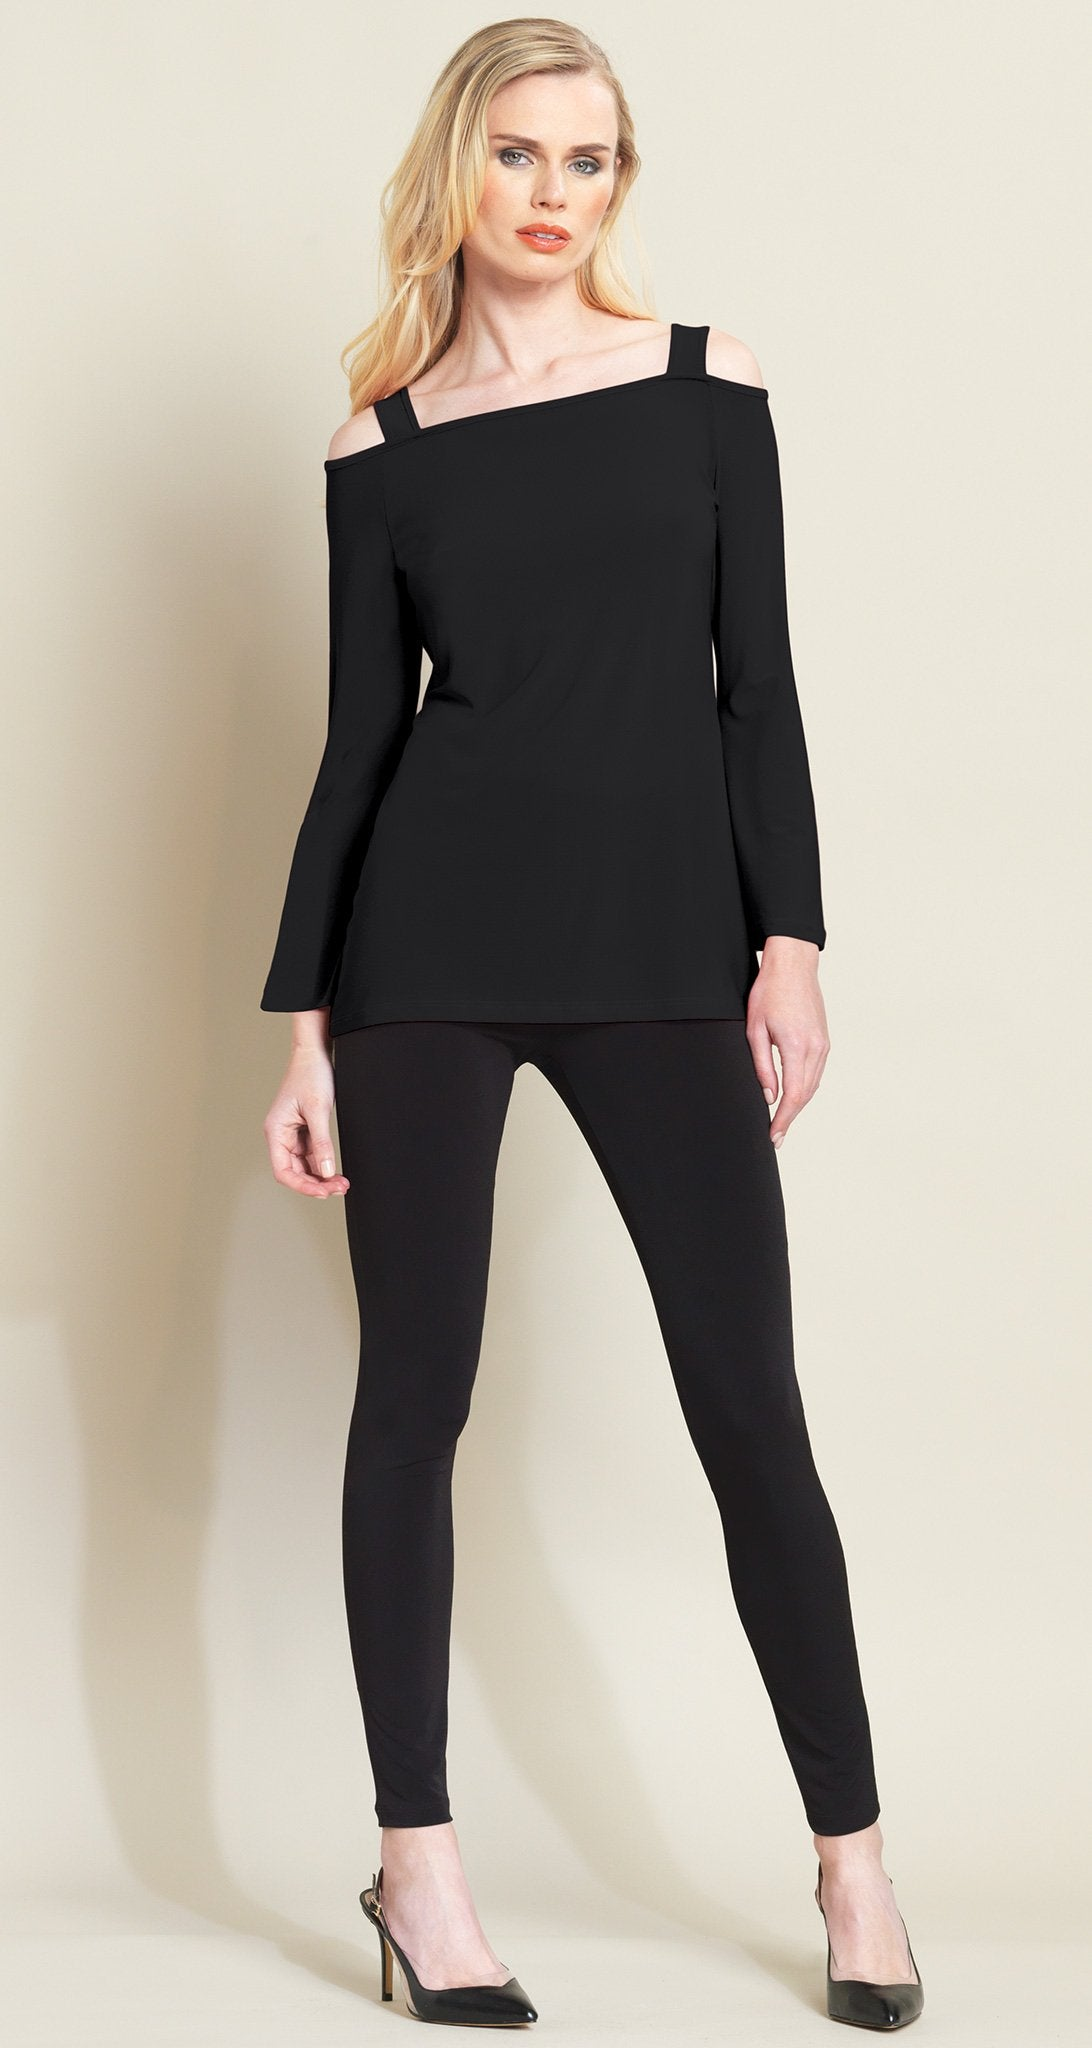 Open Shoulder Bell Sleeve Top - Black - Limited Sizes! - Clara Sunwoo